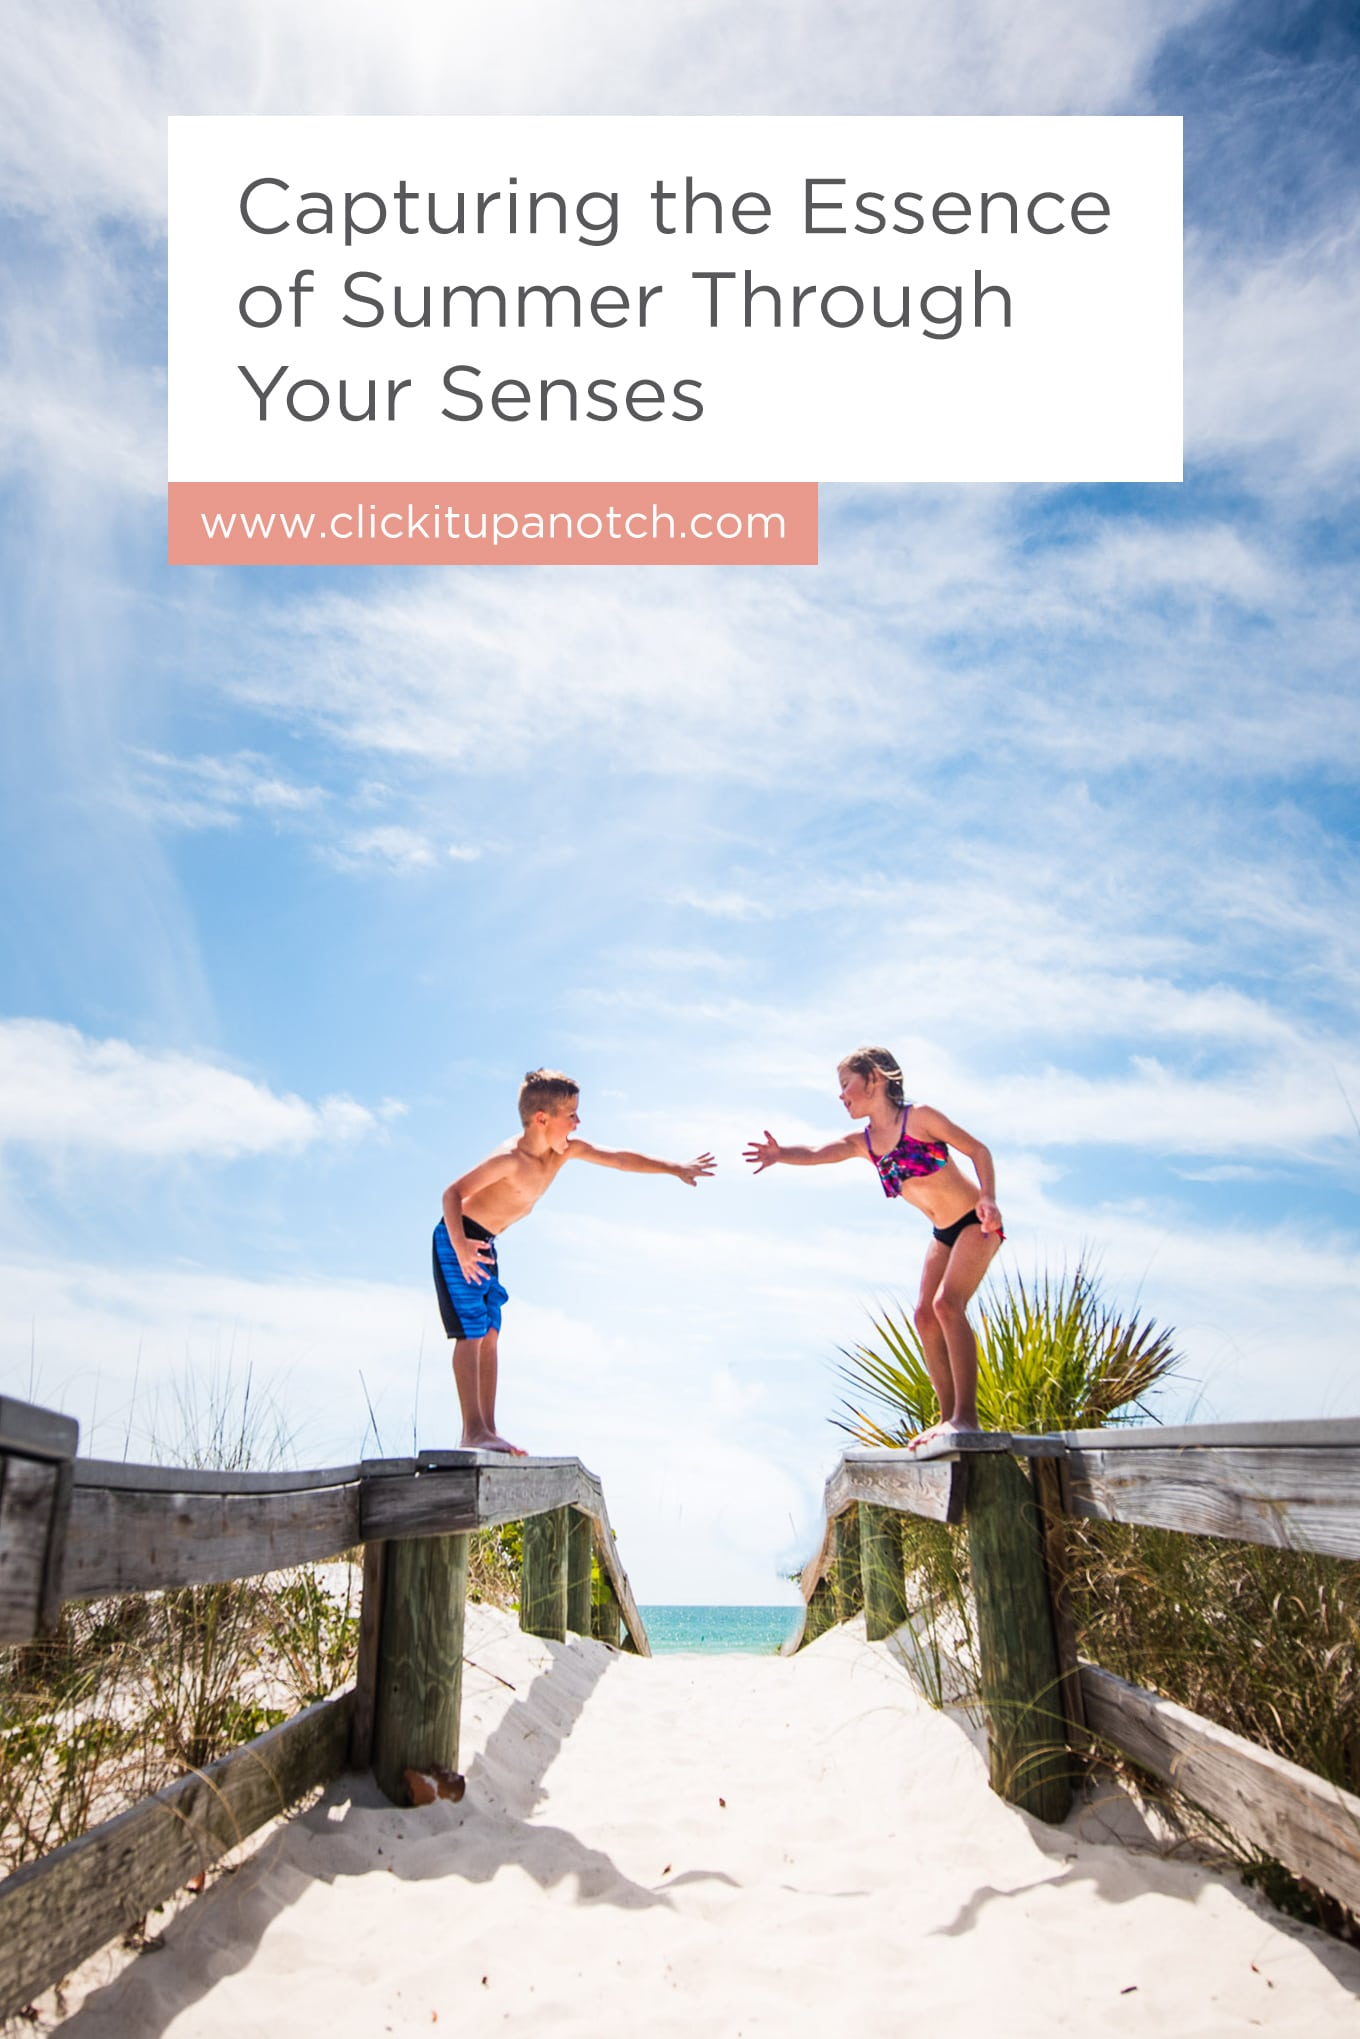 """I've never thought about capturing images based on the senses. What a fun summer photography idea! Read - """"Summer Photography: Capturing the Essence of Summer Through Your Senses"""""""